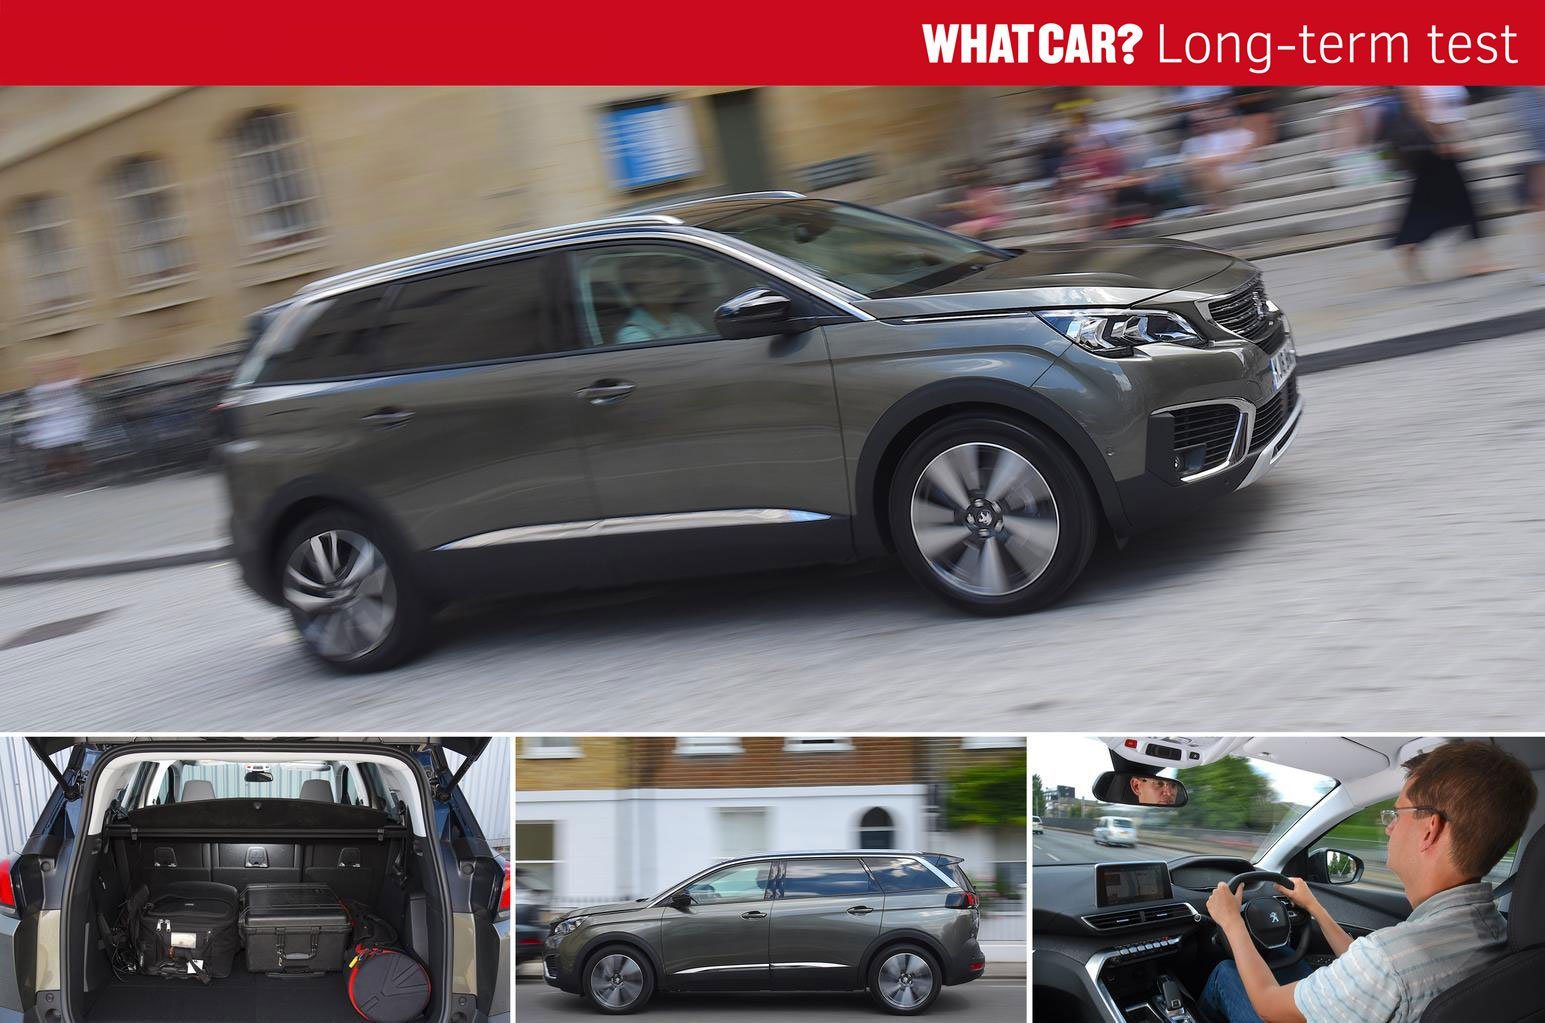 Peugeot 5008 long-term test review